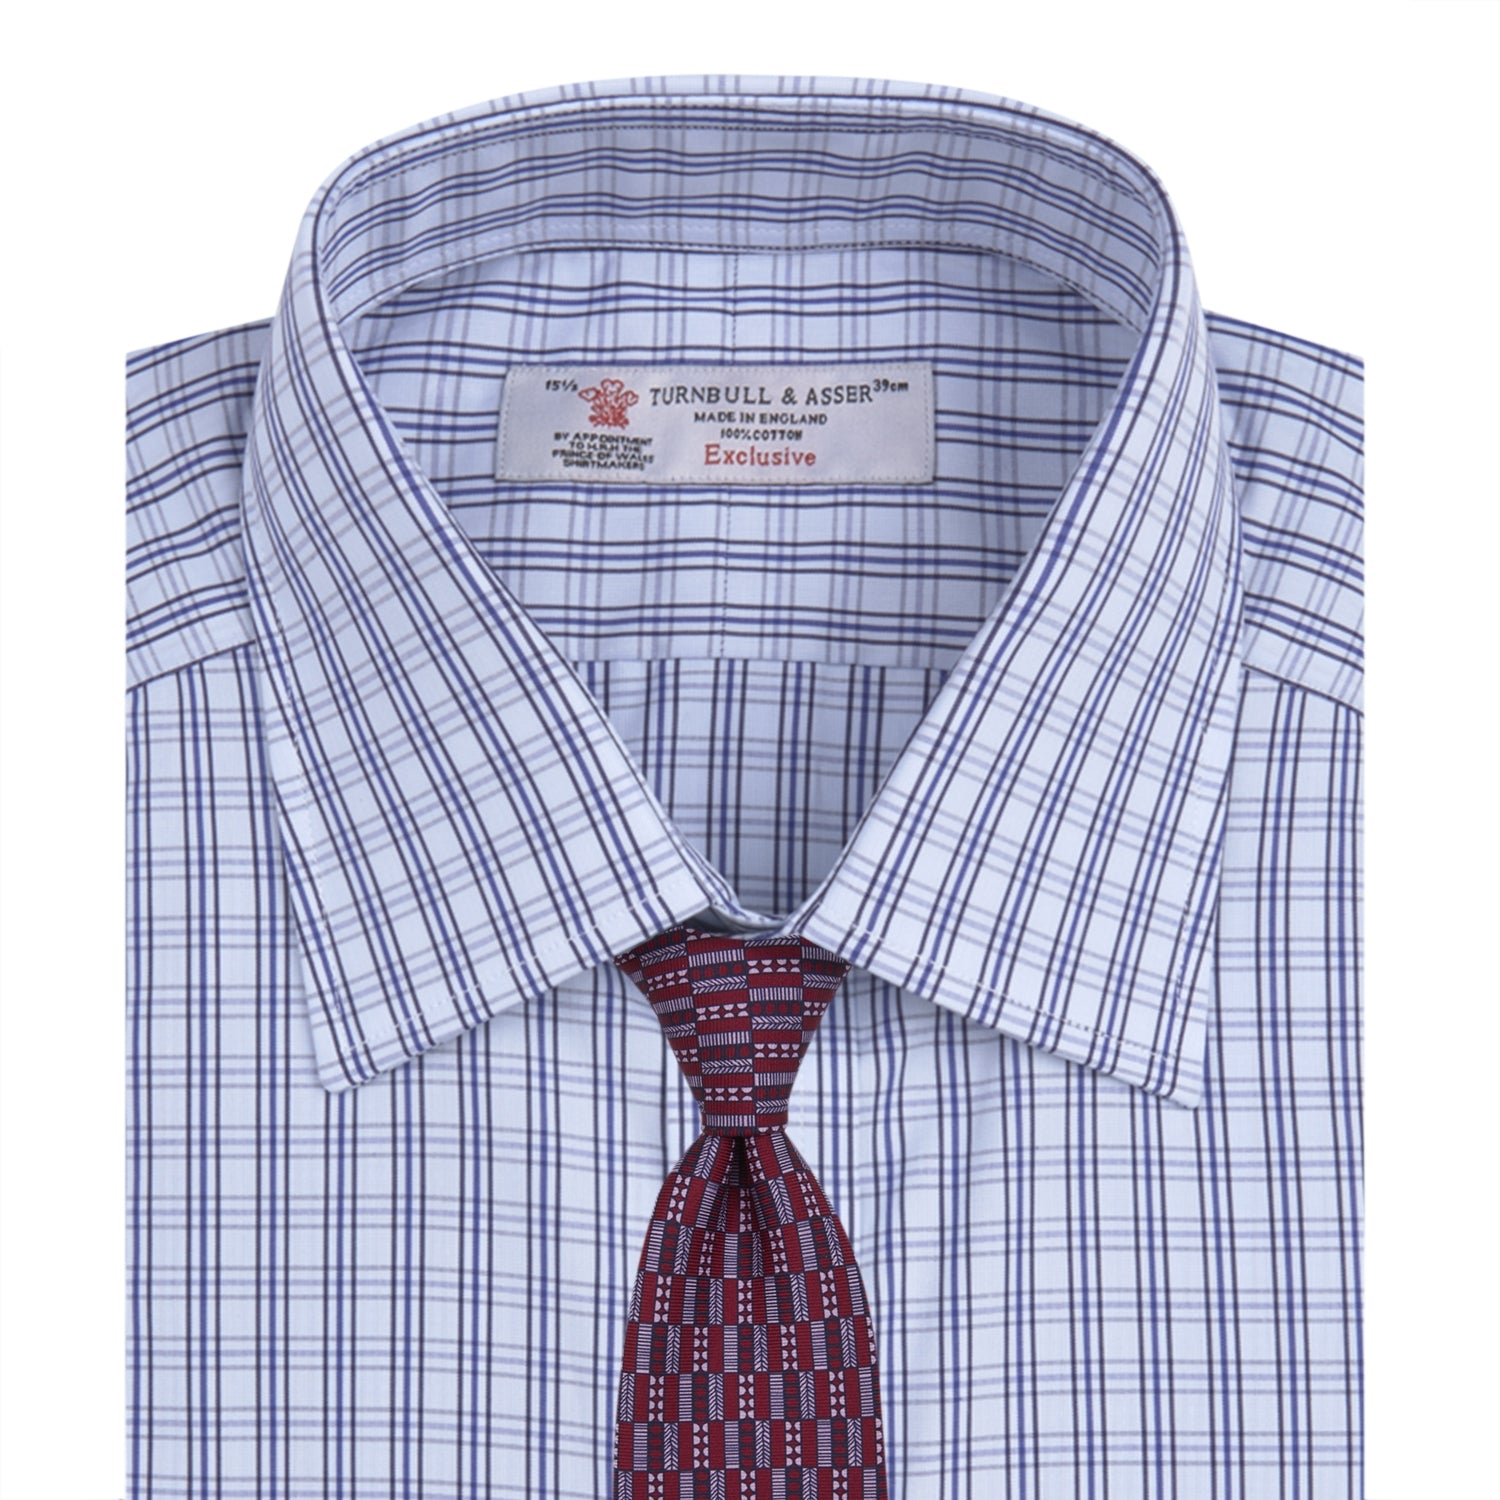 Dark Grey and Navy Triple Check Shirt with T&A Collar and Button Cuffs